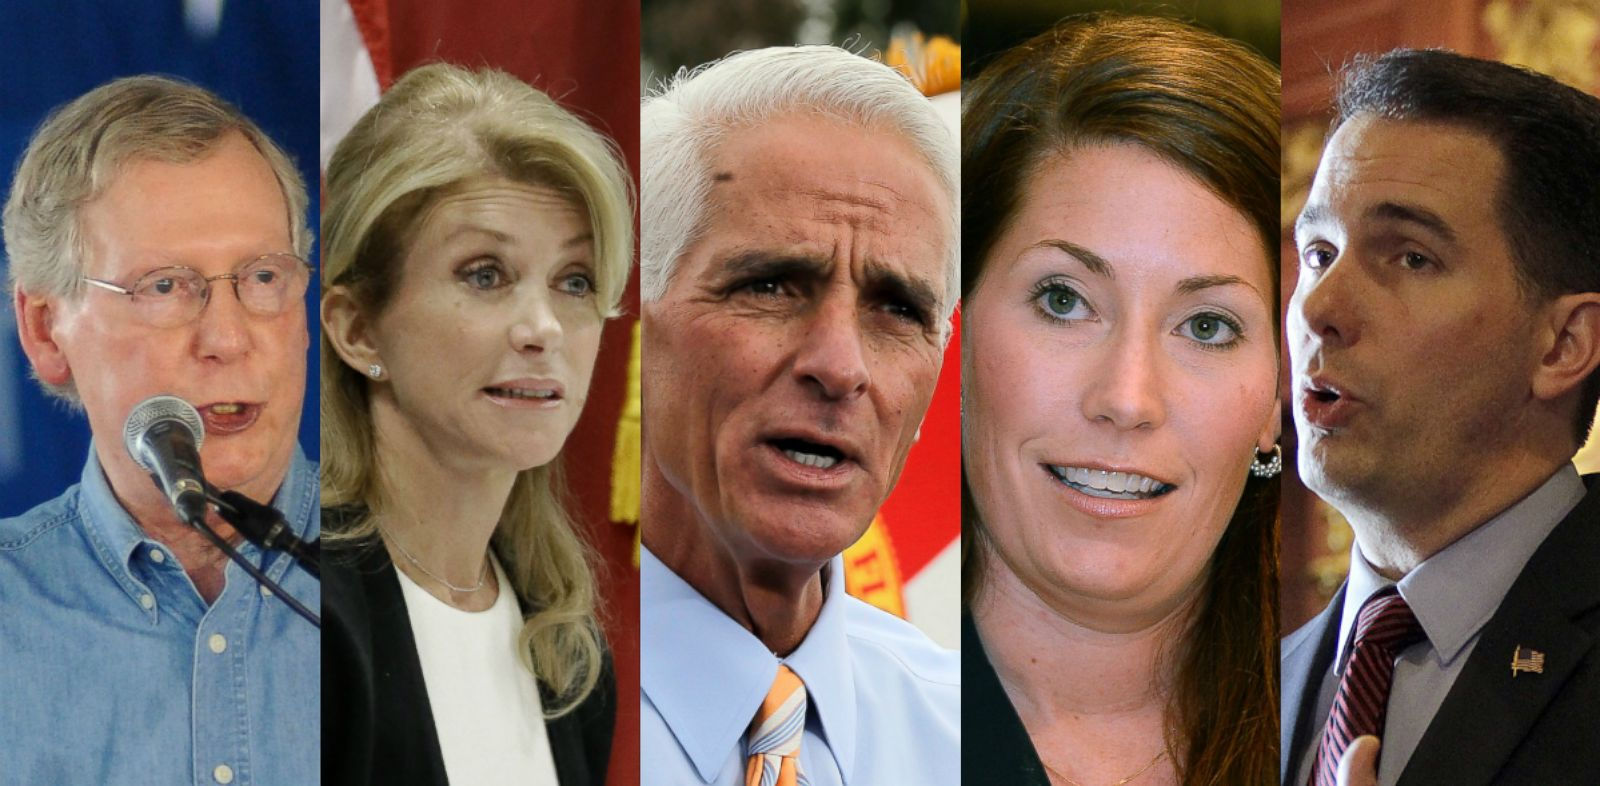 PHOTO: Kentucky Sen. Mitch McConnell, Texas State Sen. Wendy Davis, former Florida Gov. Charlie Crist, Kentucky U.S. Senate candidate Alison Lundergan Grimes, Wisconsin Gov. Scott Walker.